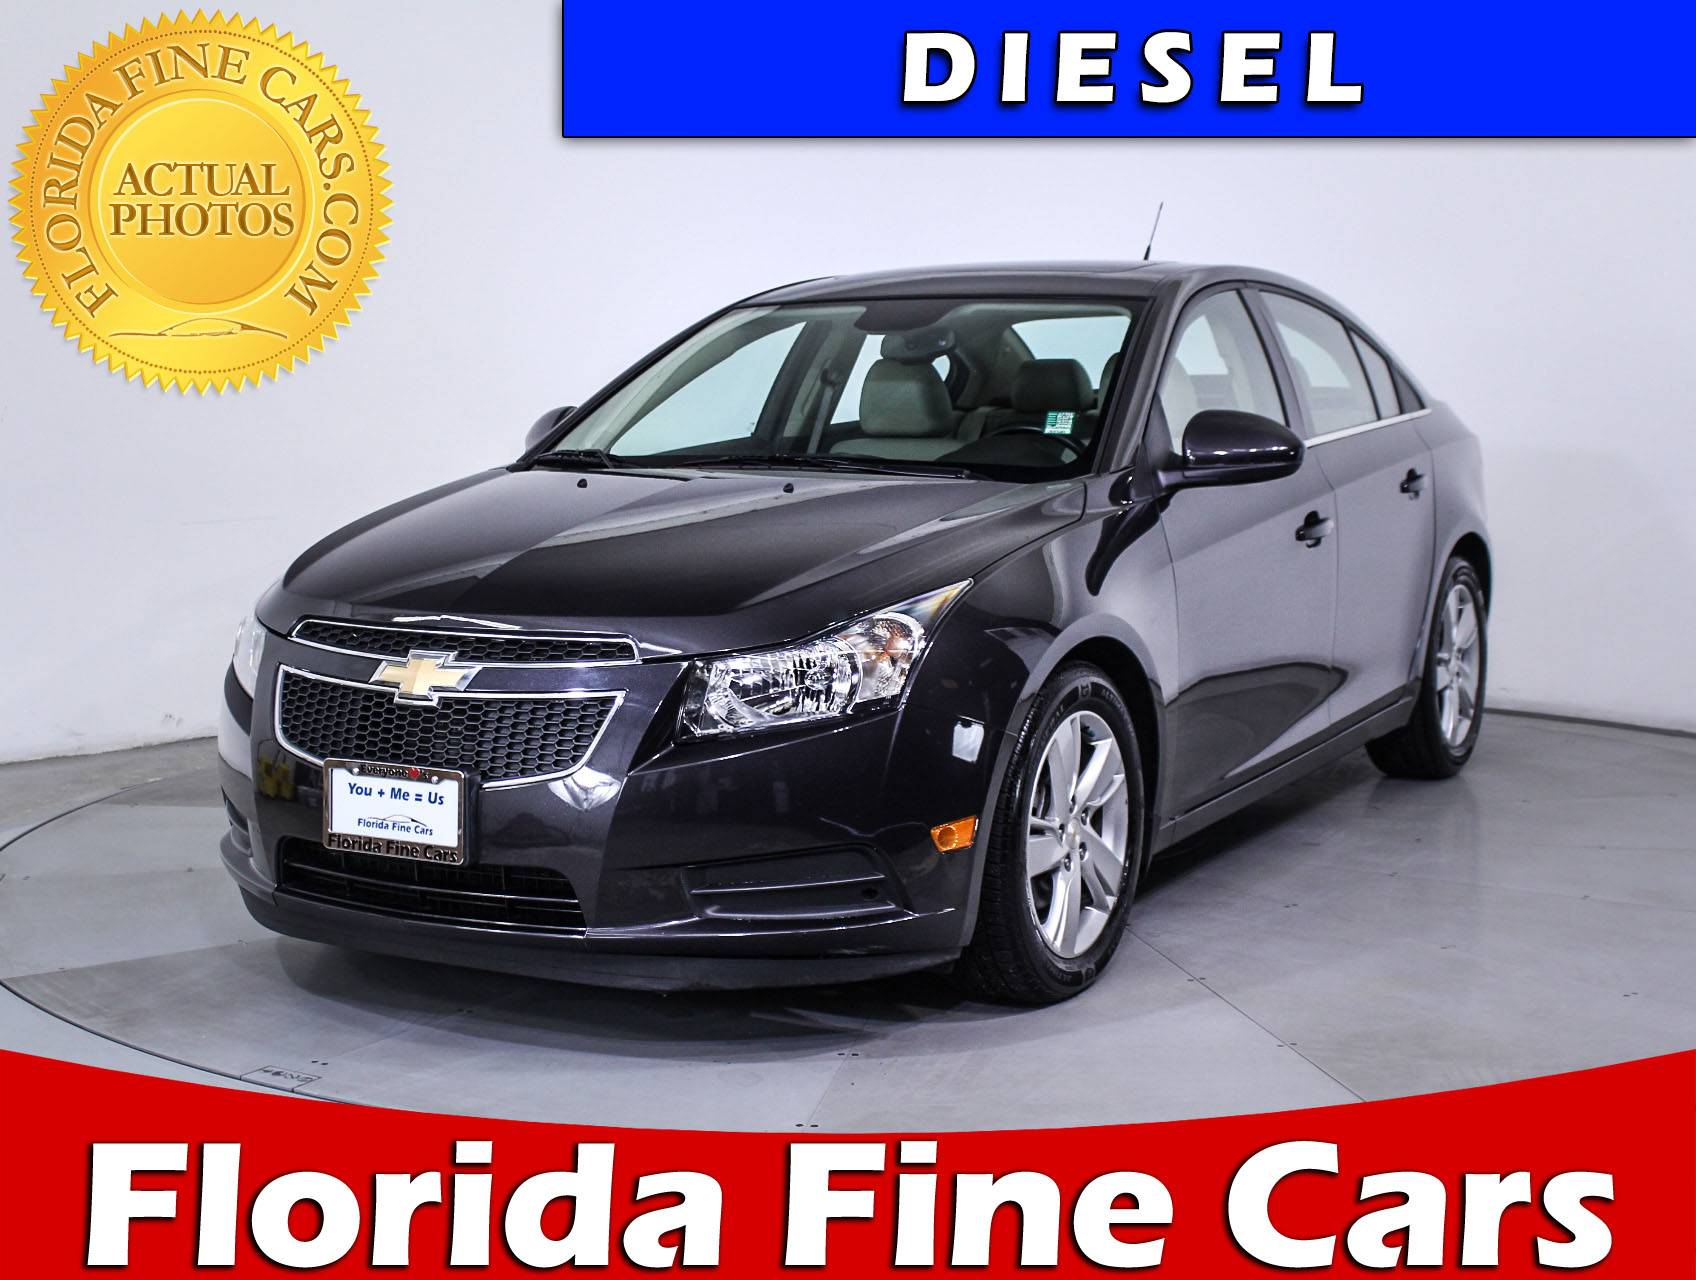 states detail media jcr cruze united diesel feb news pages images content rightpar us chicago pressroom en show galleryphotogrid chevrolet photos specs